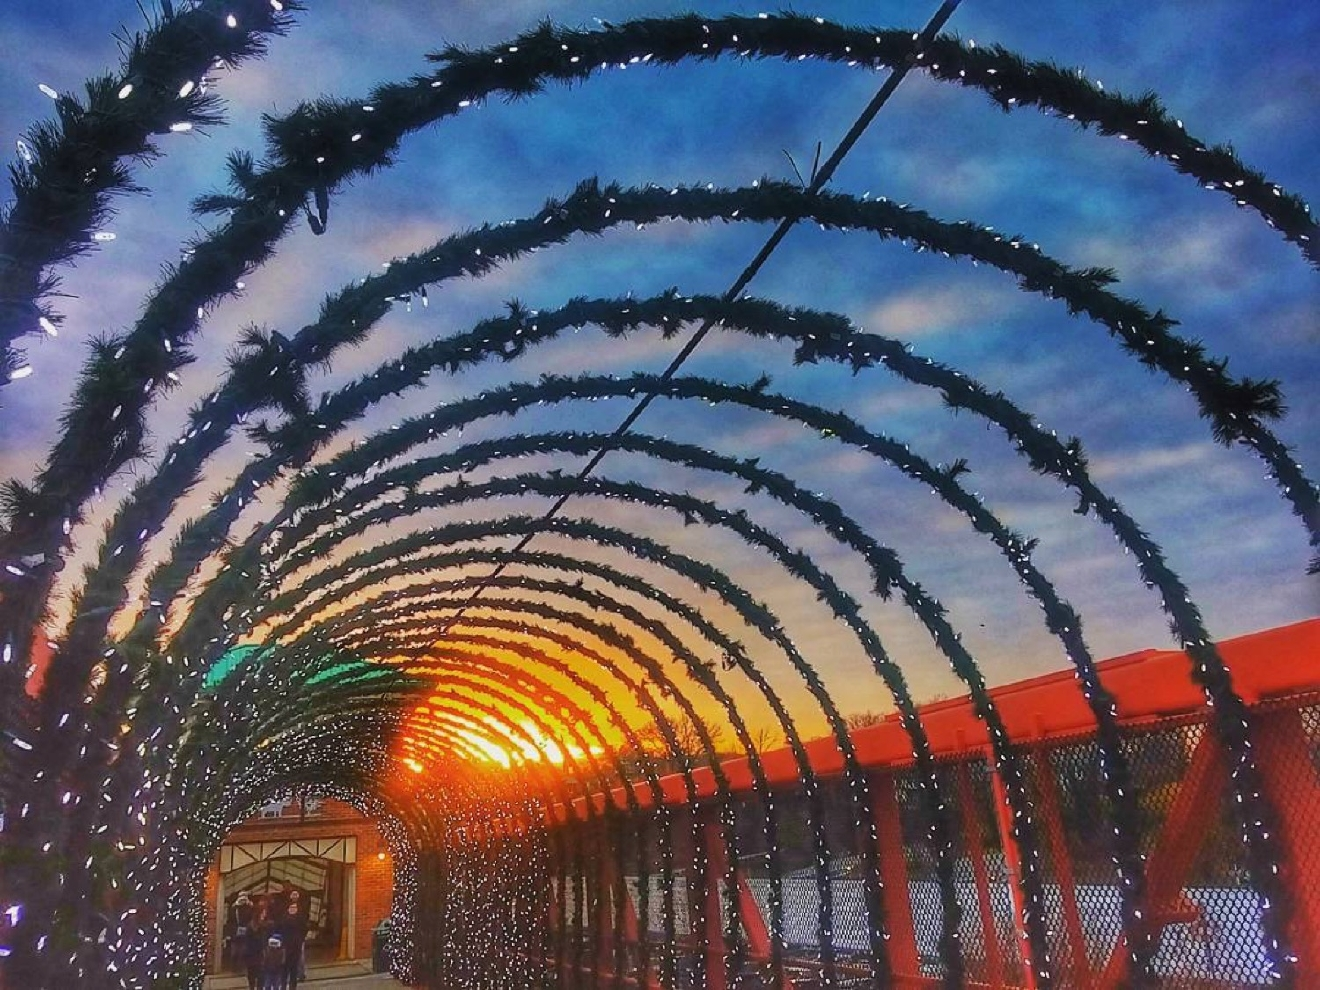 Image: IG user @ddaniels410 / Post: Another SPECTACULAR sunset in Cincy! // Published: 12.17.16